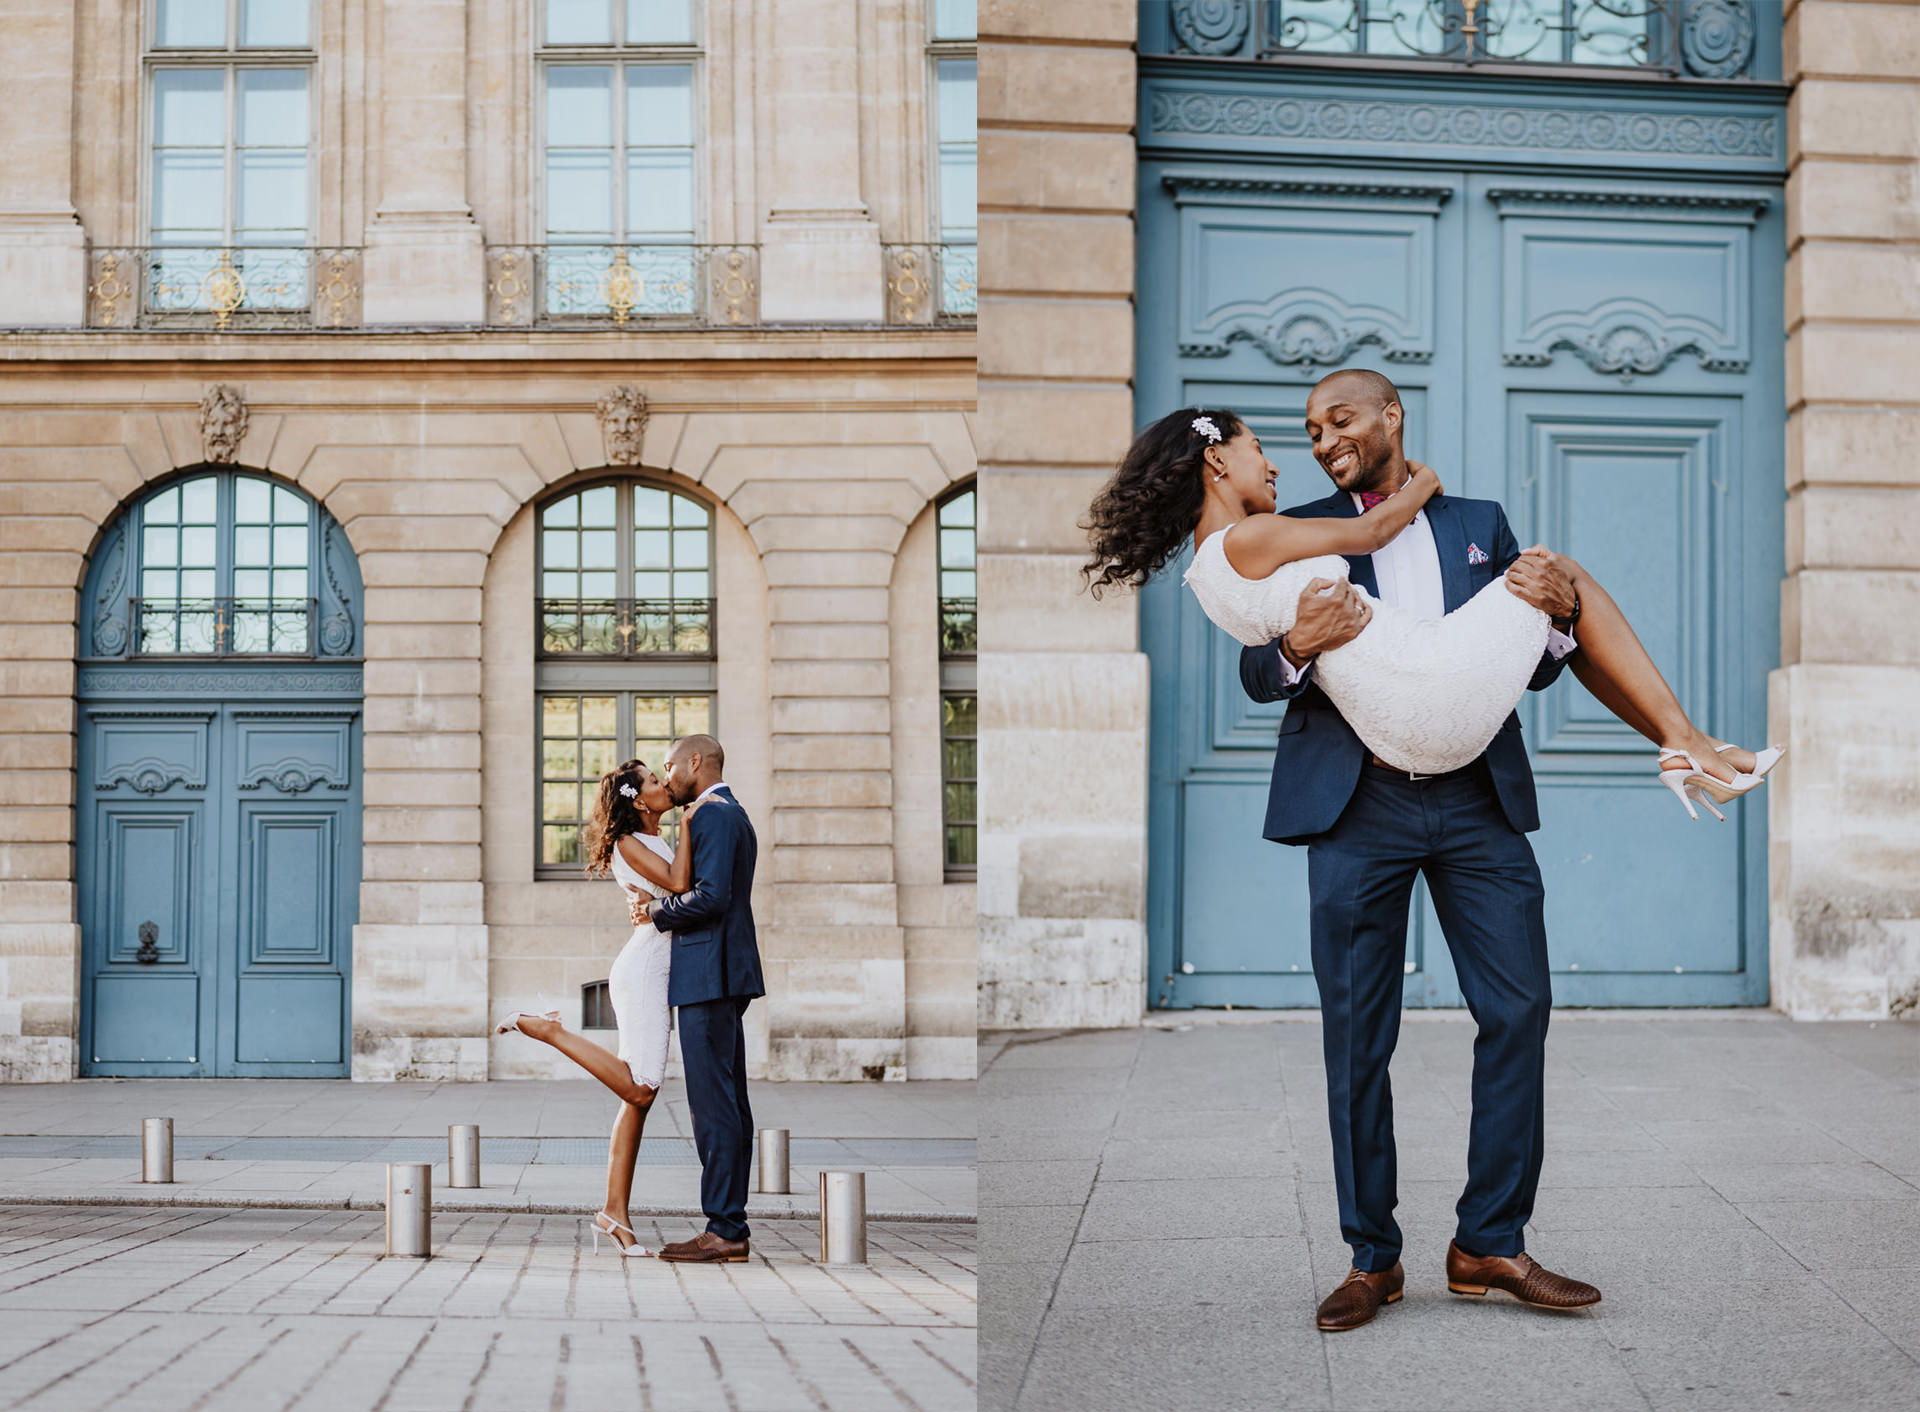 Paris mariage photographer